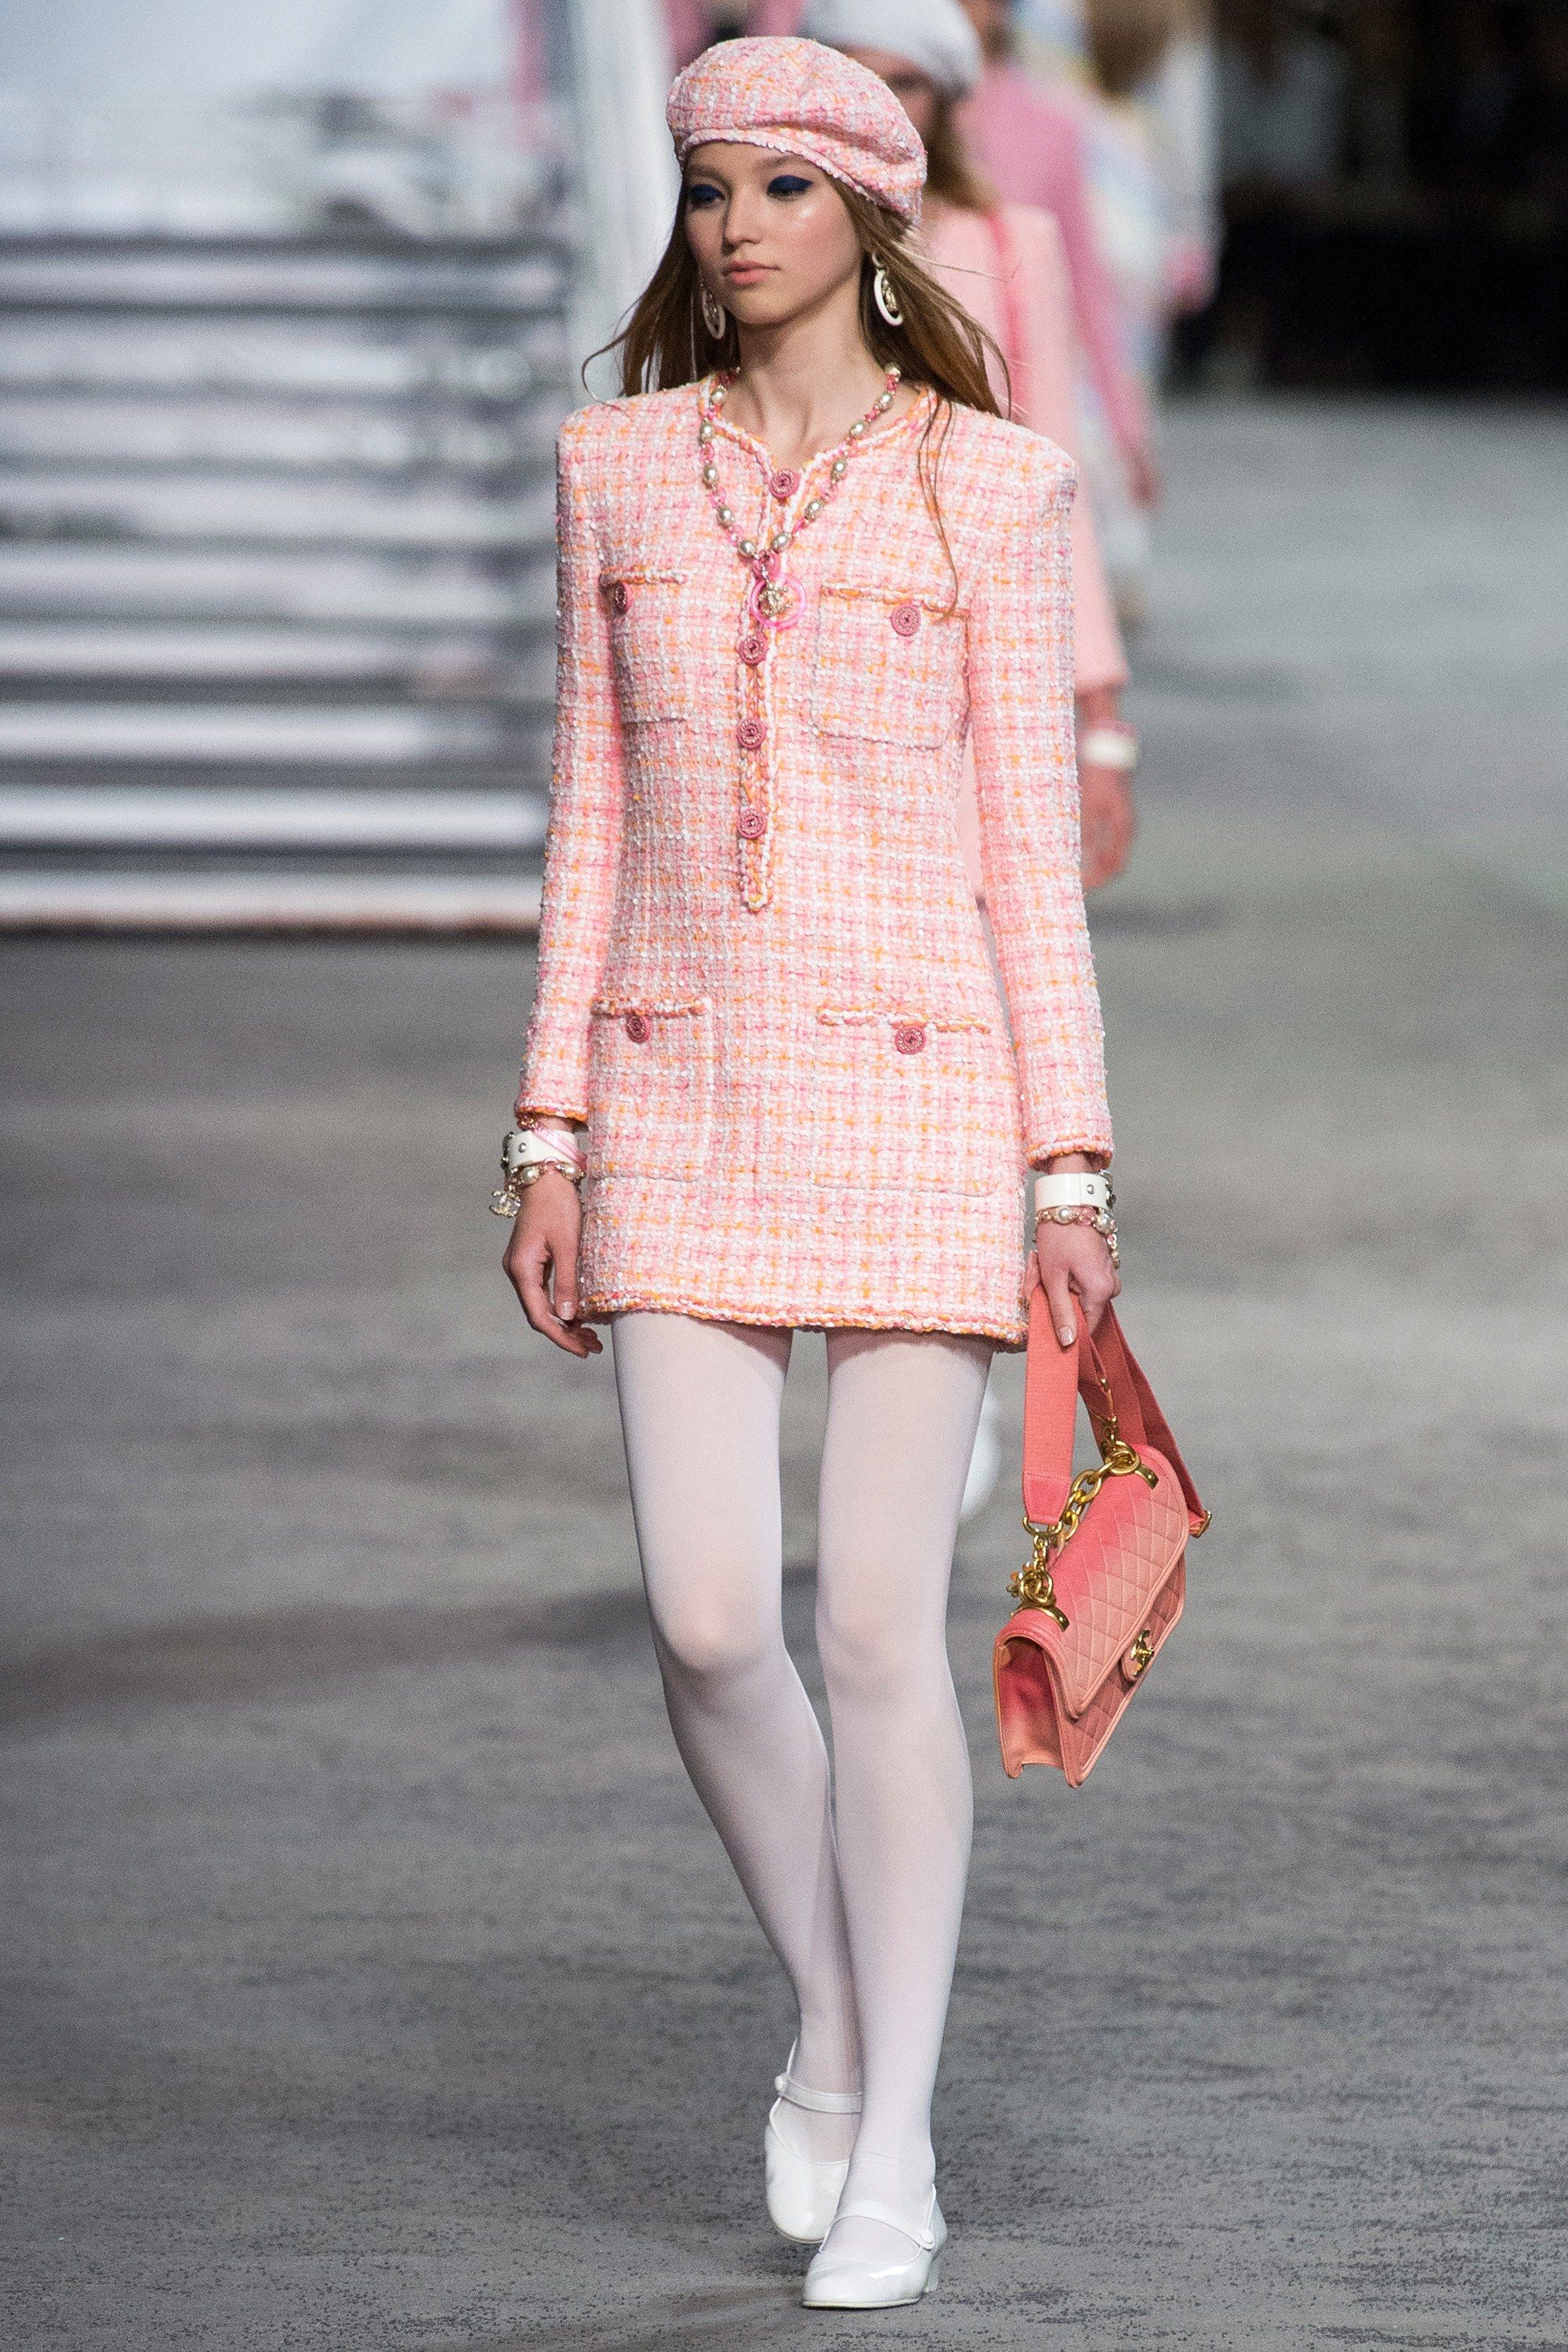 887149d935e4e Chanel Resort 2019 Paris Collection - Vogue  clothes  beautifulclothes   fashion  apparel  fashiontrends  style  stylewatch  fashioninspiration   designers ...